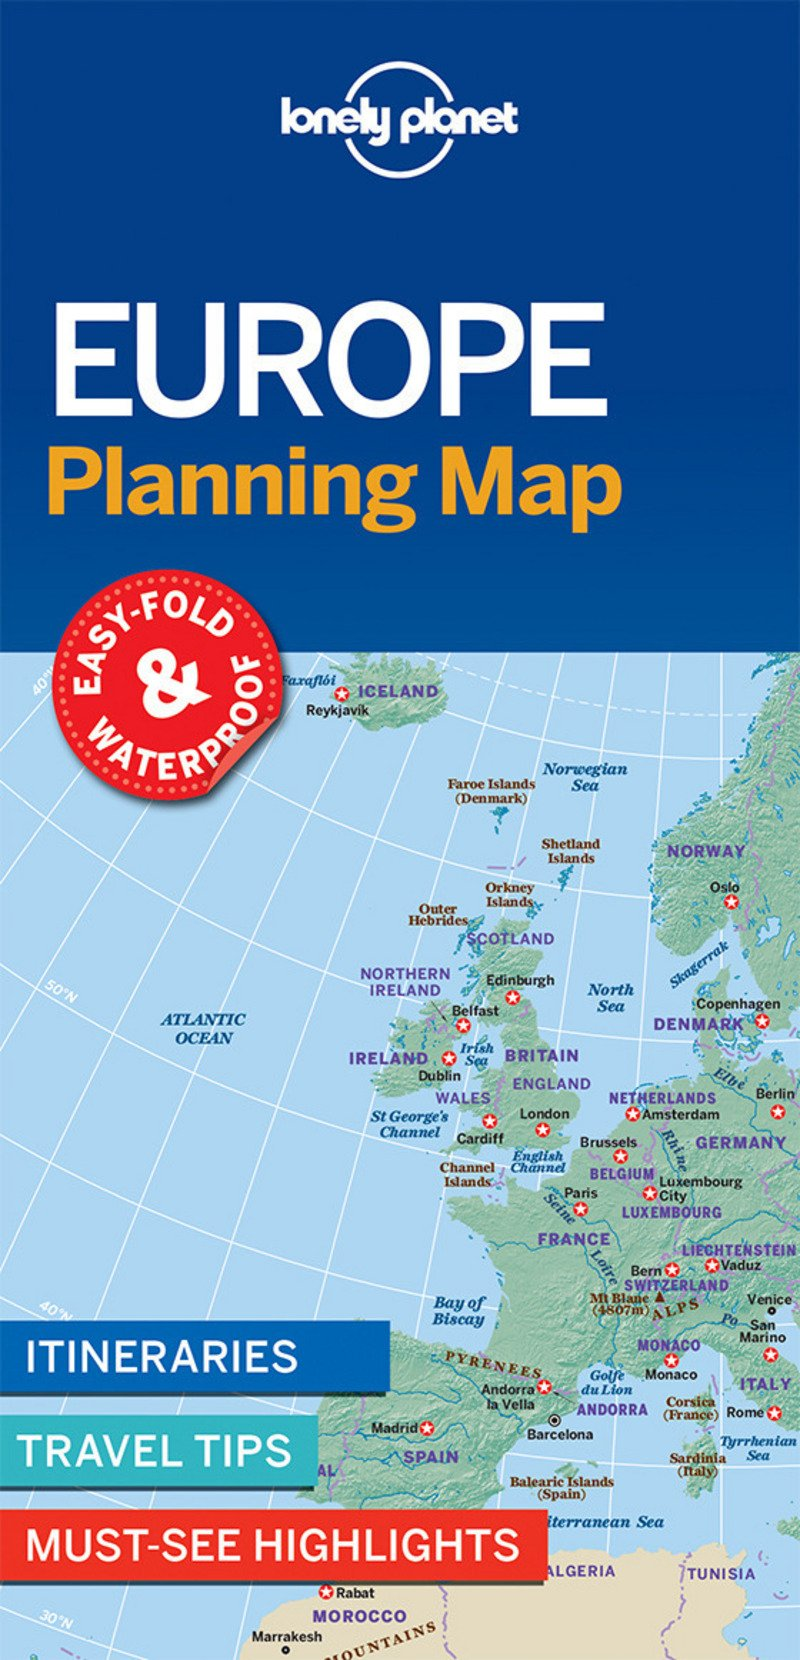 Lonely Planet Europe Planning Map: Lonely Planet ... on hunting maps, europe maps, germany maps, france maps, information maps, italy maps, decision making maps, transportation maps, australia maps, turkey maps, canada maps, halloween maps, asia maps, new zealand maps,